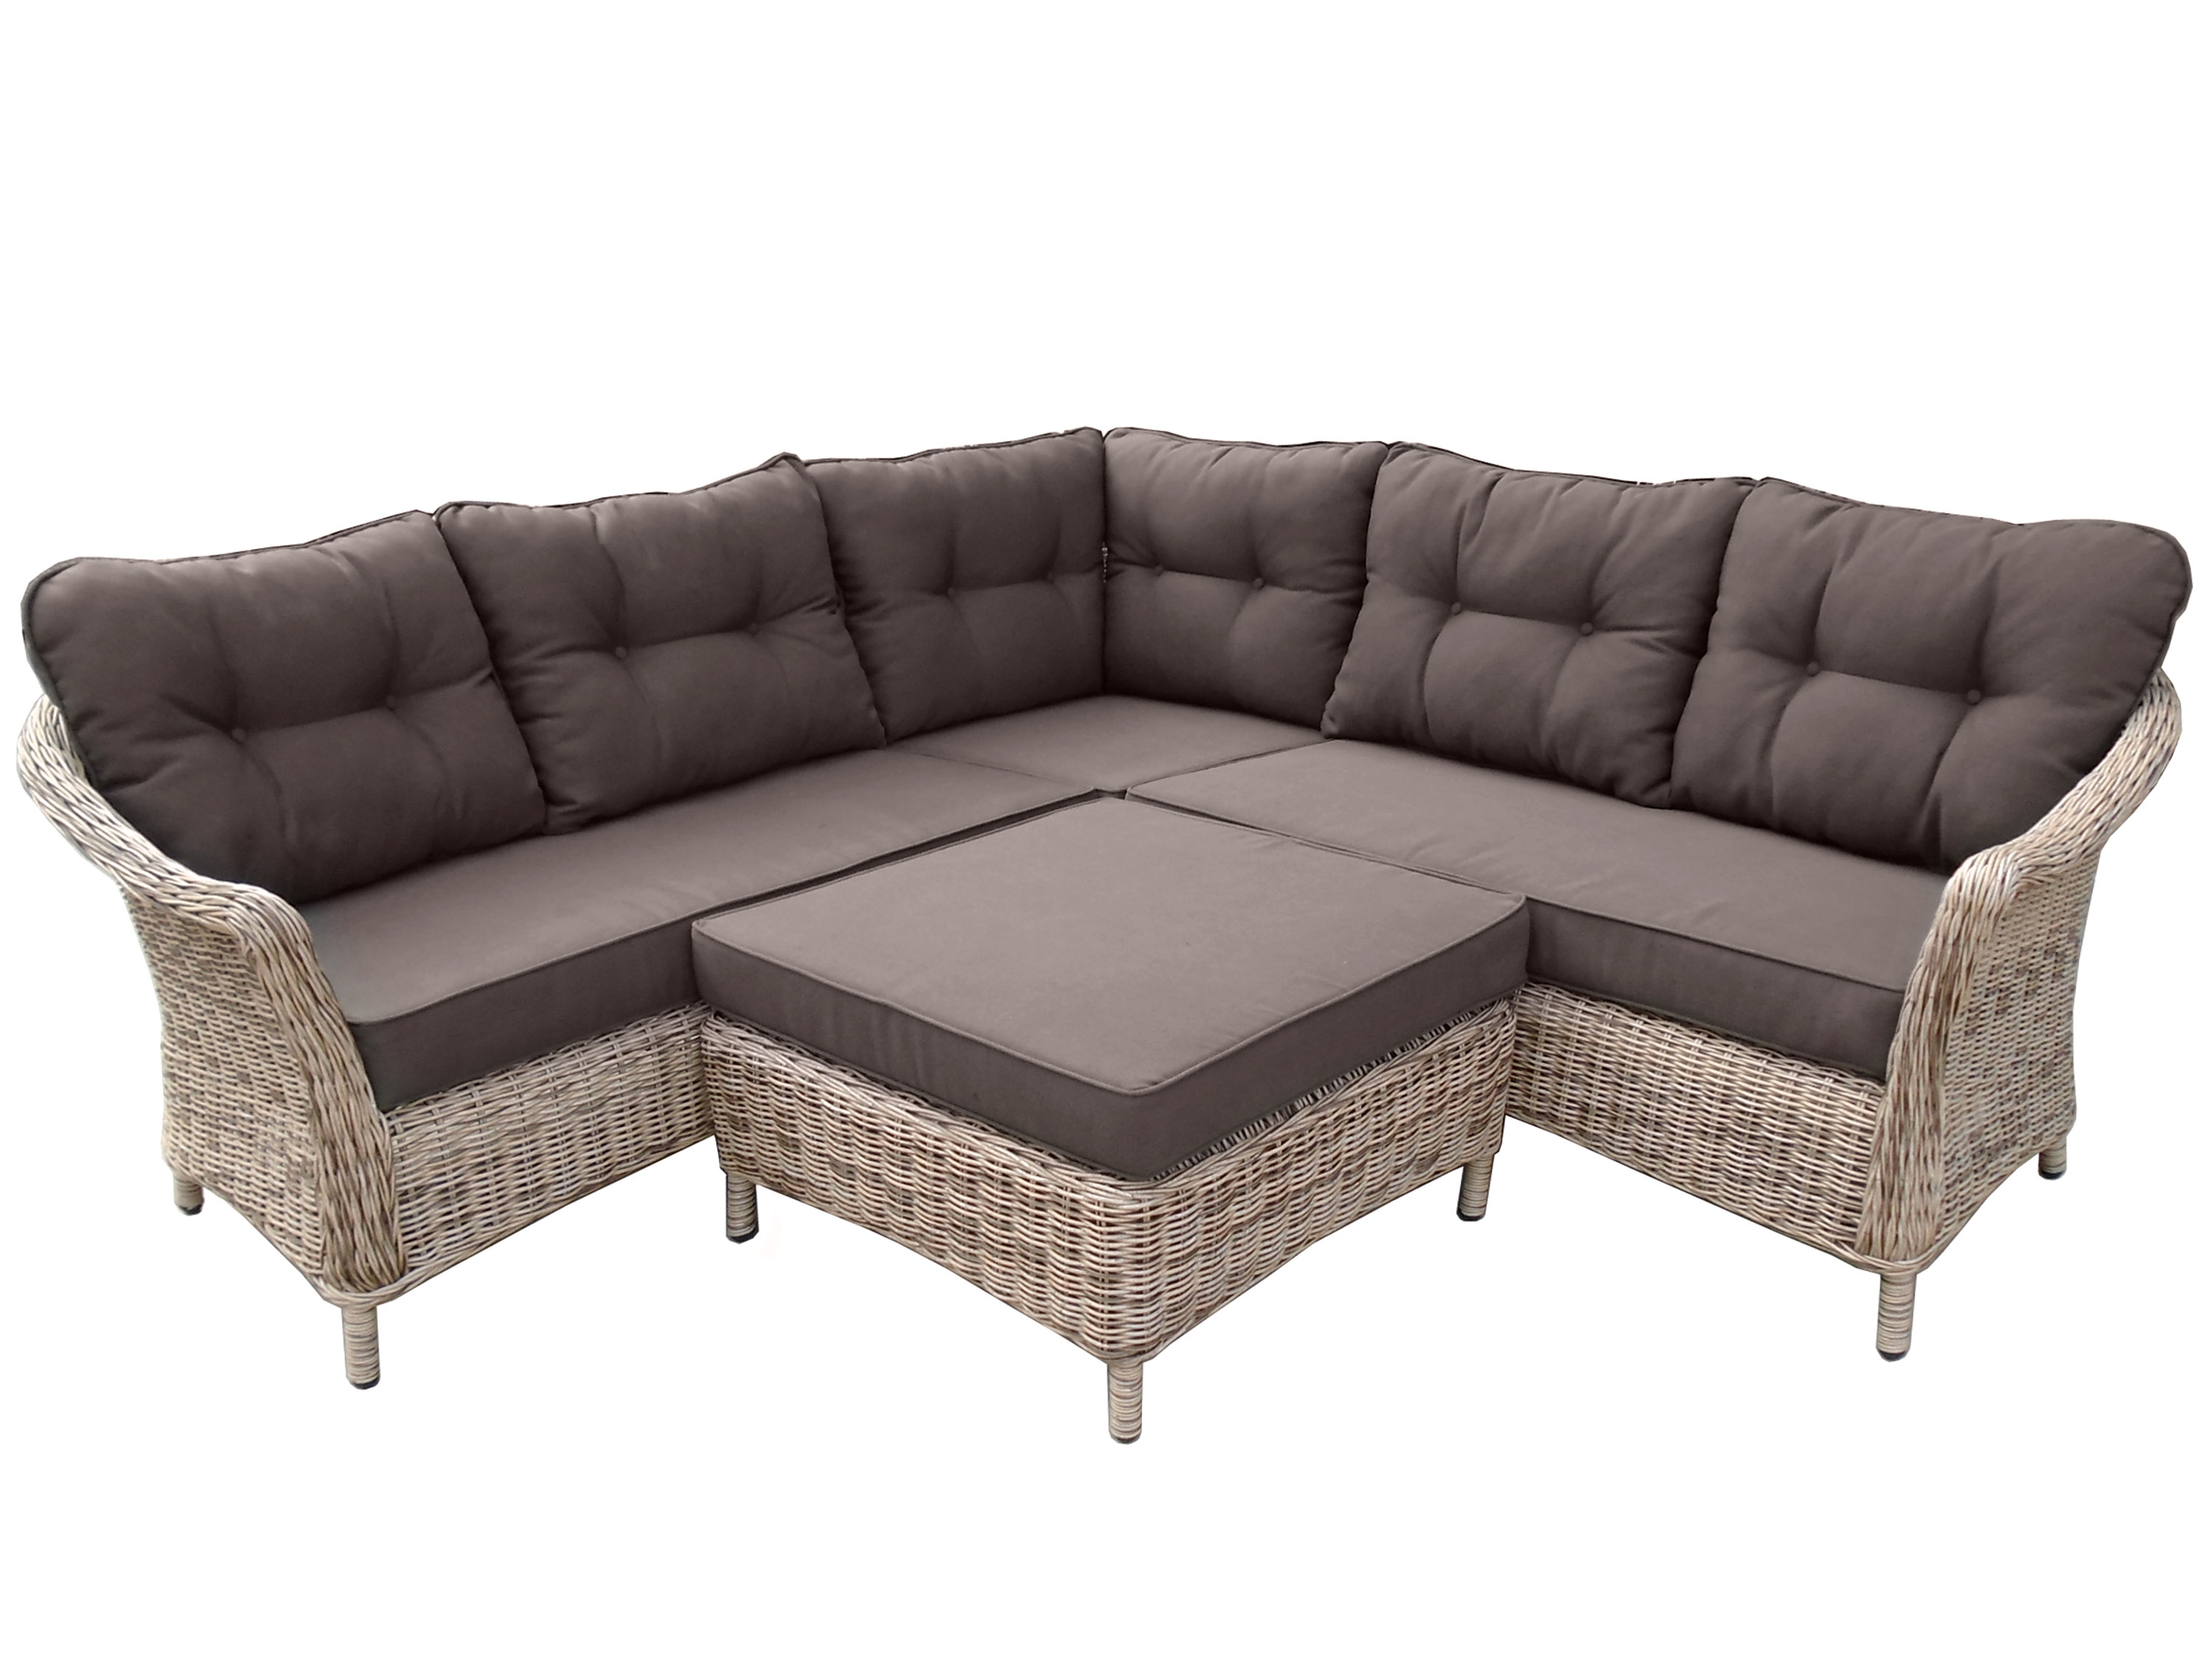 4 teilige lounge ecke coventry rattanoptik gartenm bel l nse. Black Bedroom Furniture Sets. Home Design Ideas